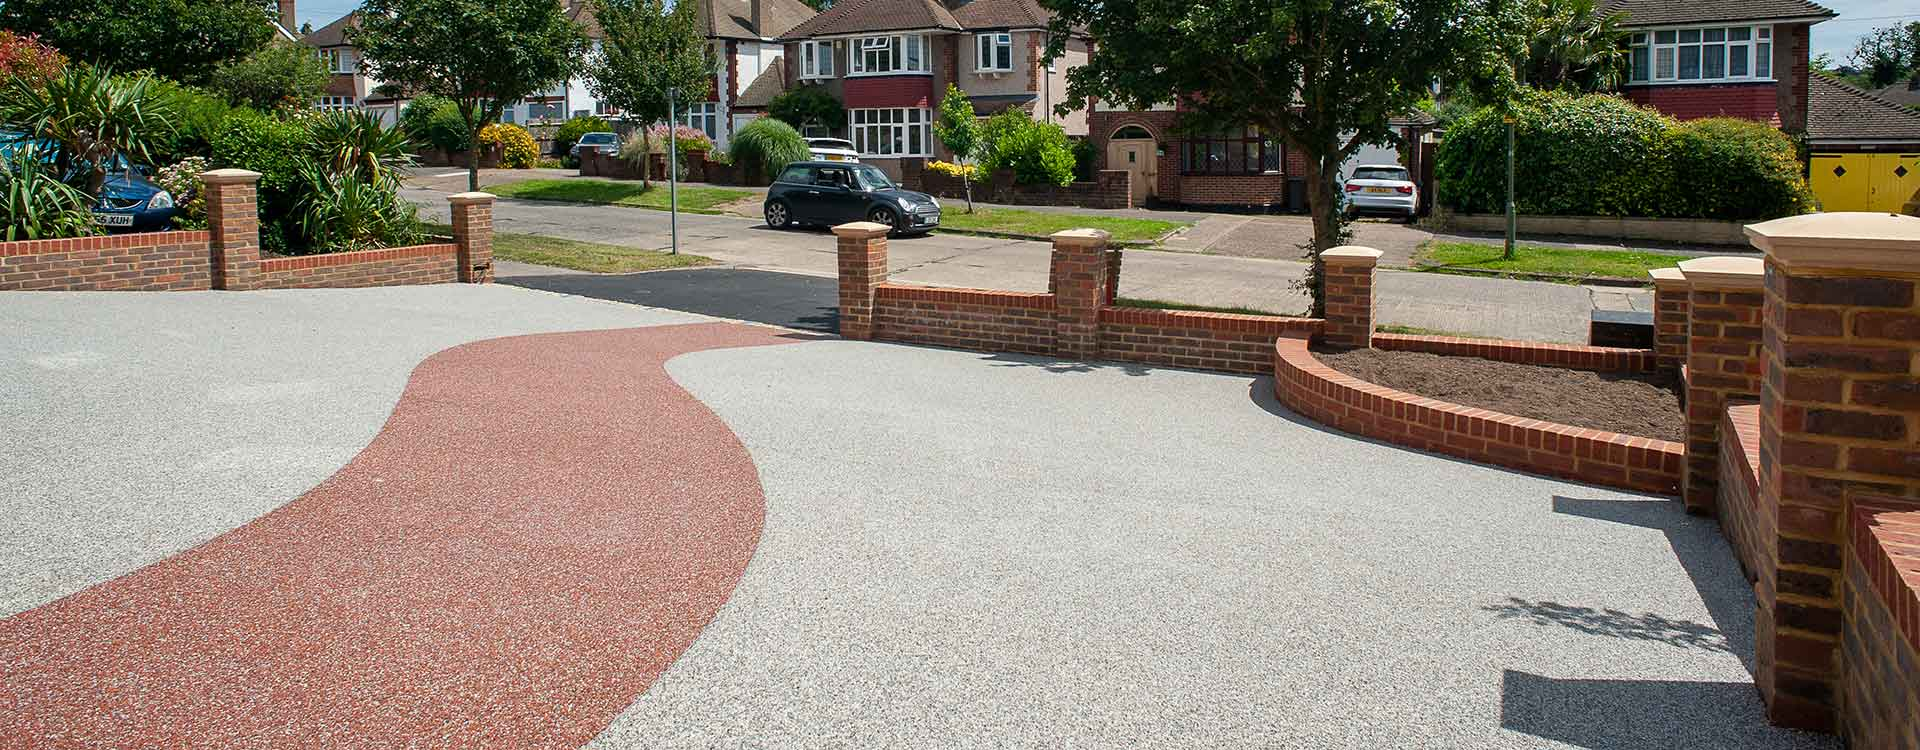 Grey resin driveway with brick wall